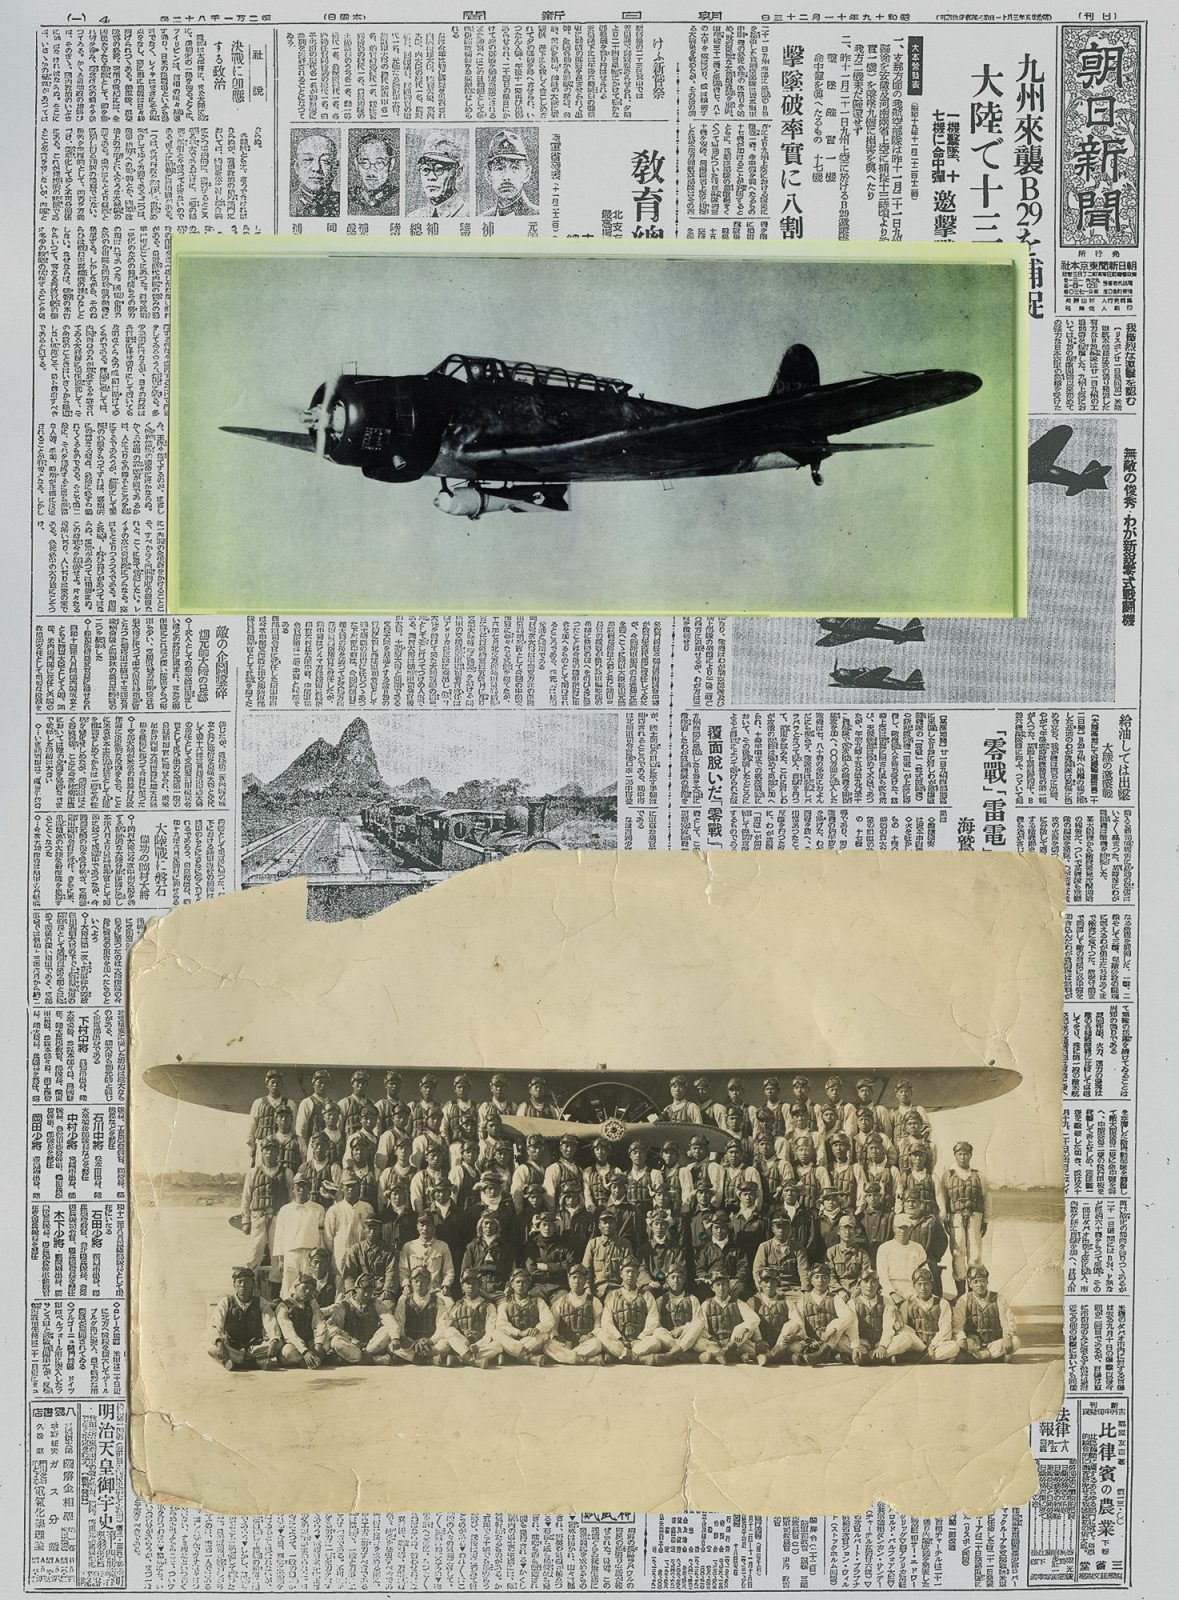 These photographs belong to Keiichi Kuwahara (87), a former Kamikaze pilot, who luckily survived because of engine trouble.